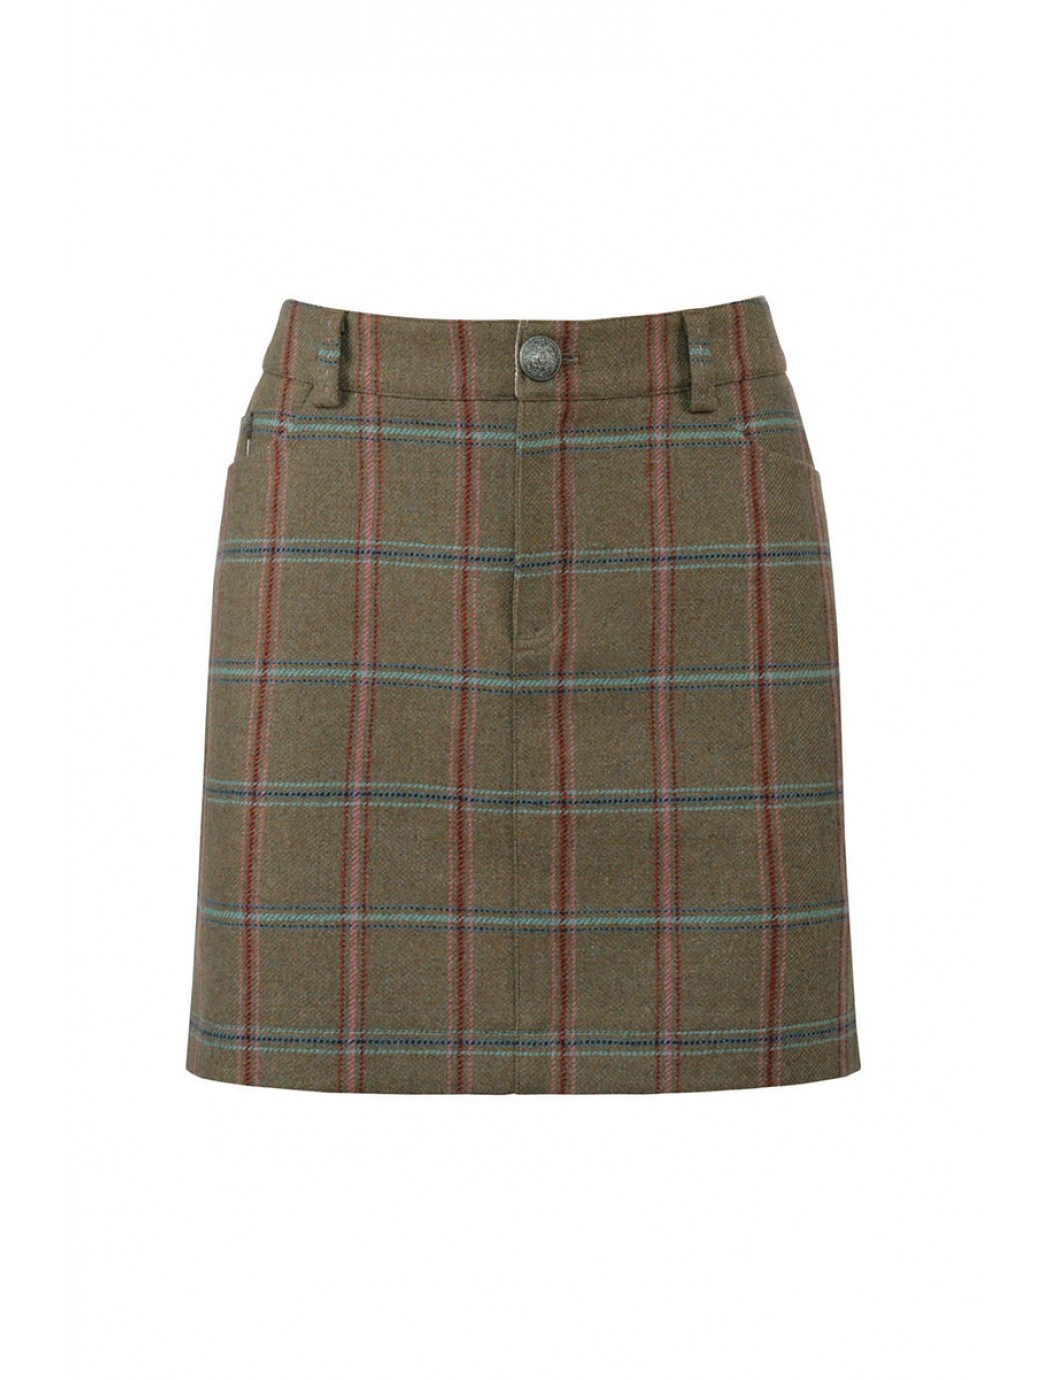 clover-womens-tweed-connacht-meadow